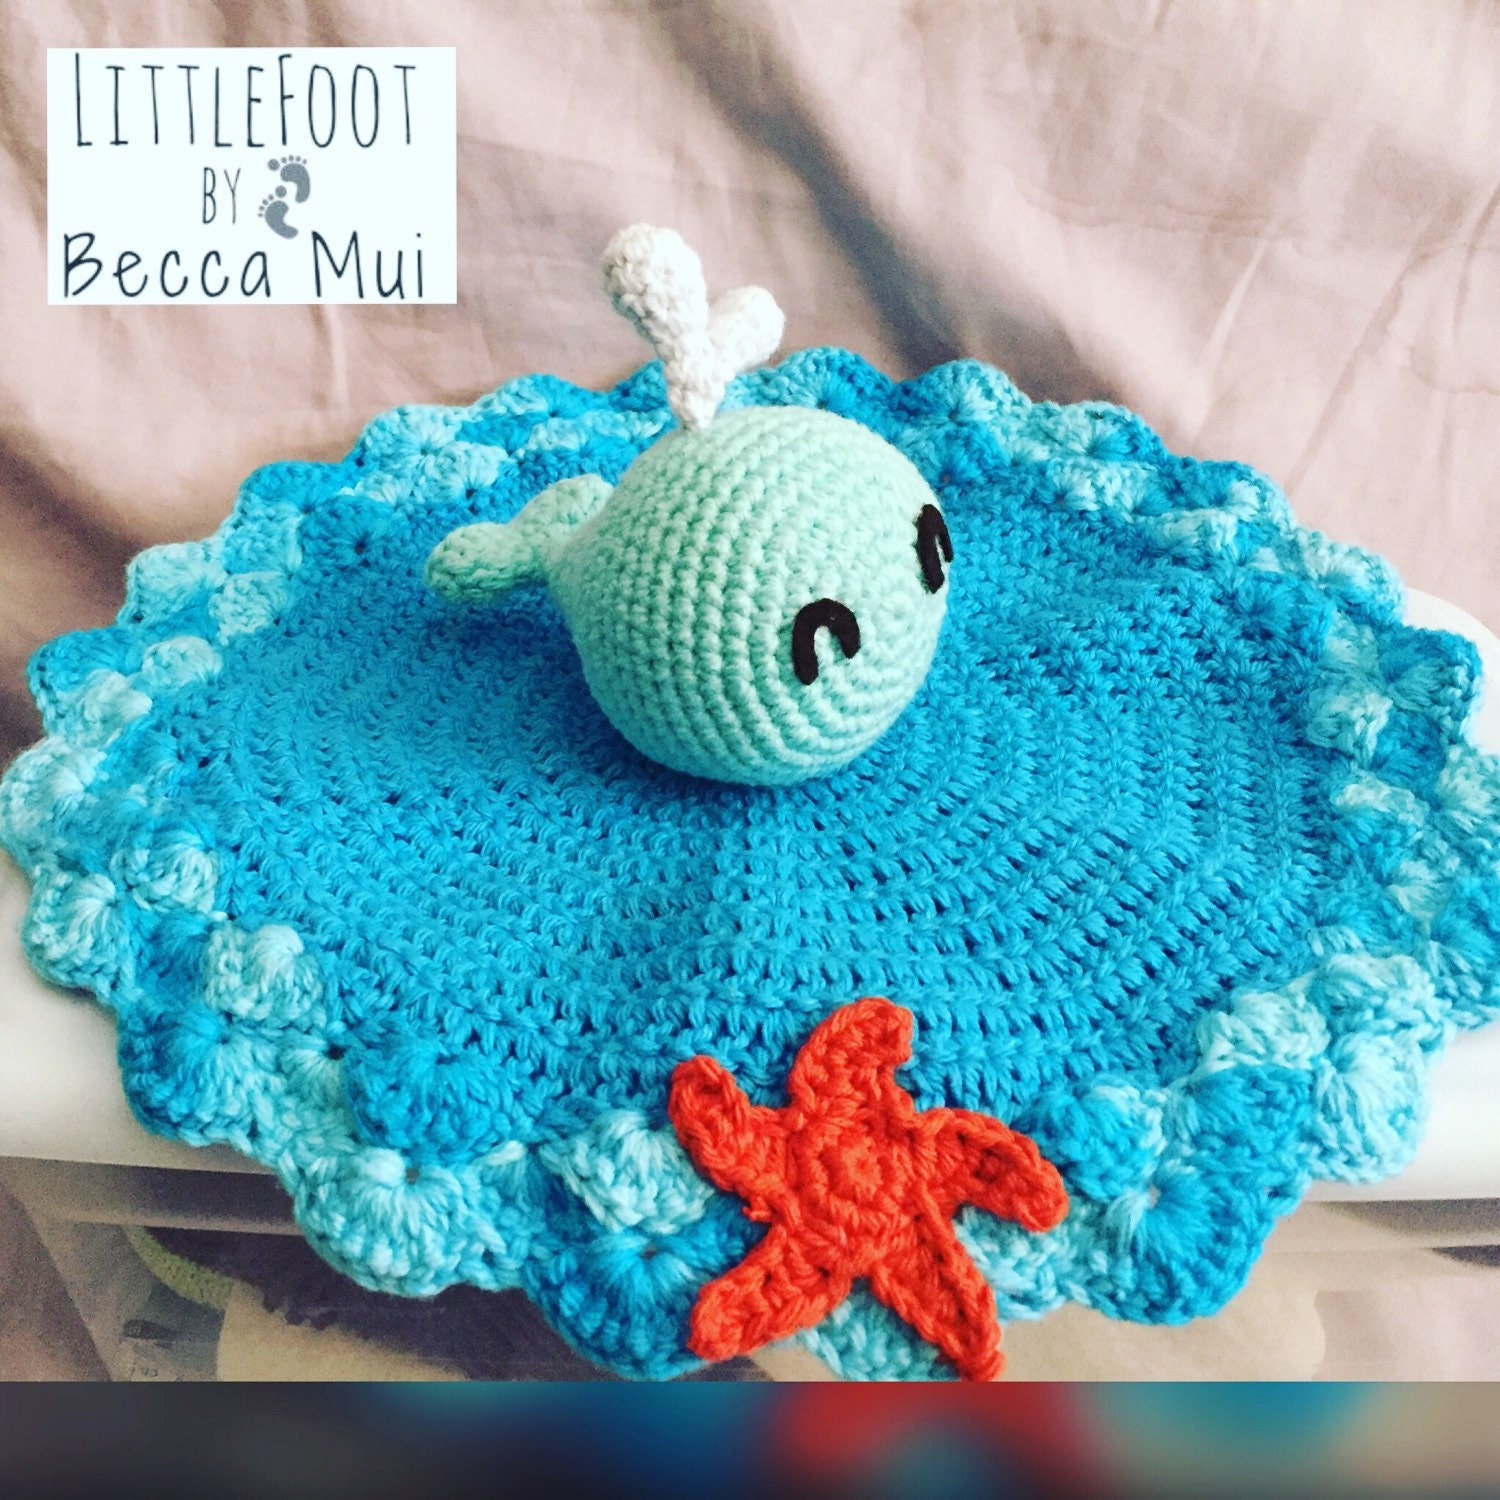 Free Crochet Whale Baby Blanket Pattern : Crochet Whale Security Blanket Lovey by LittleFootByBeccaMui